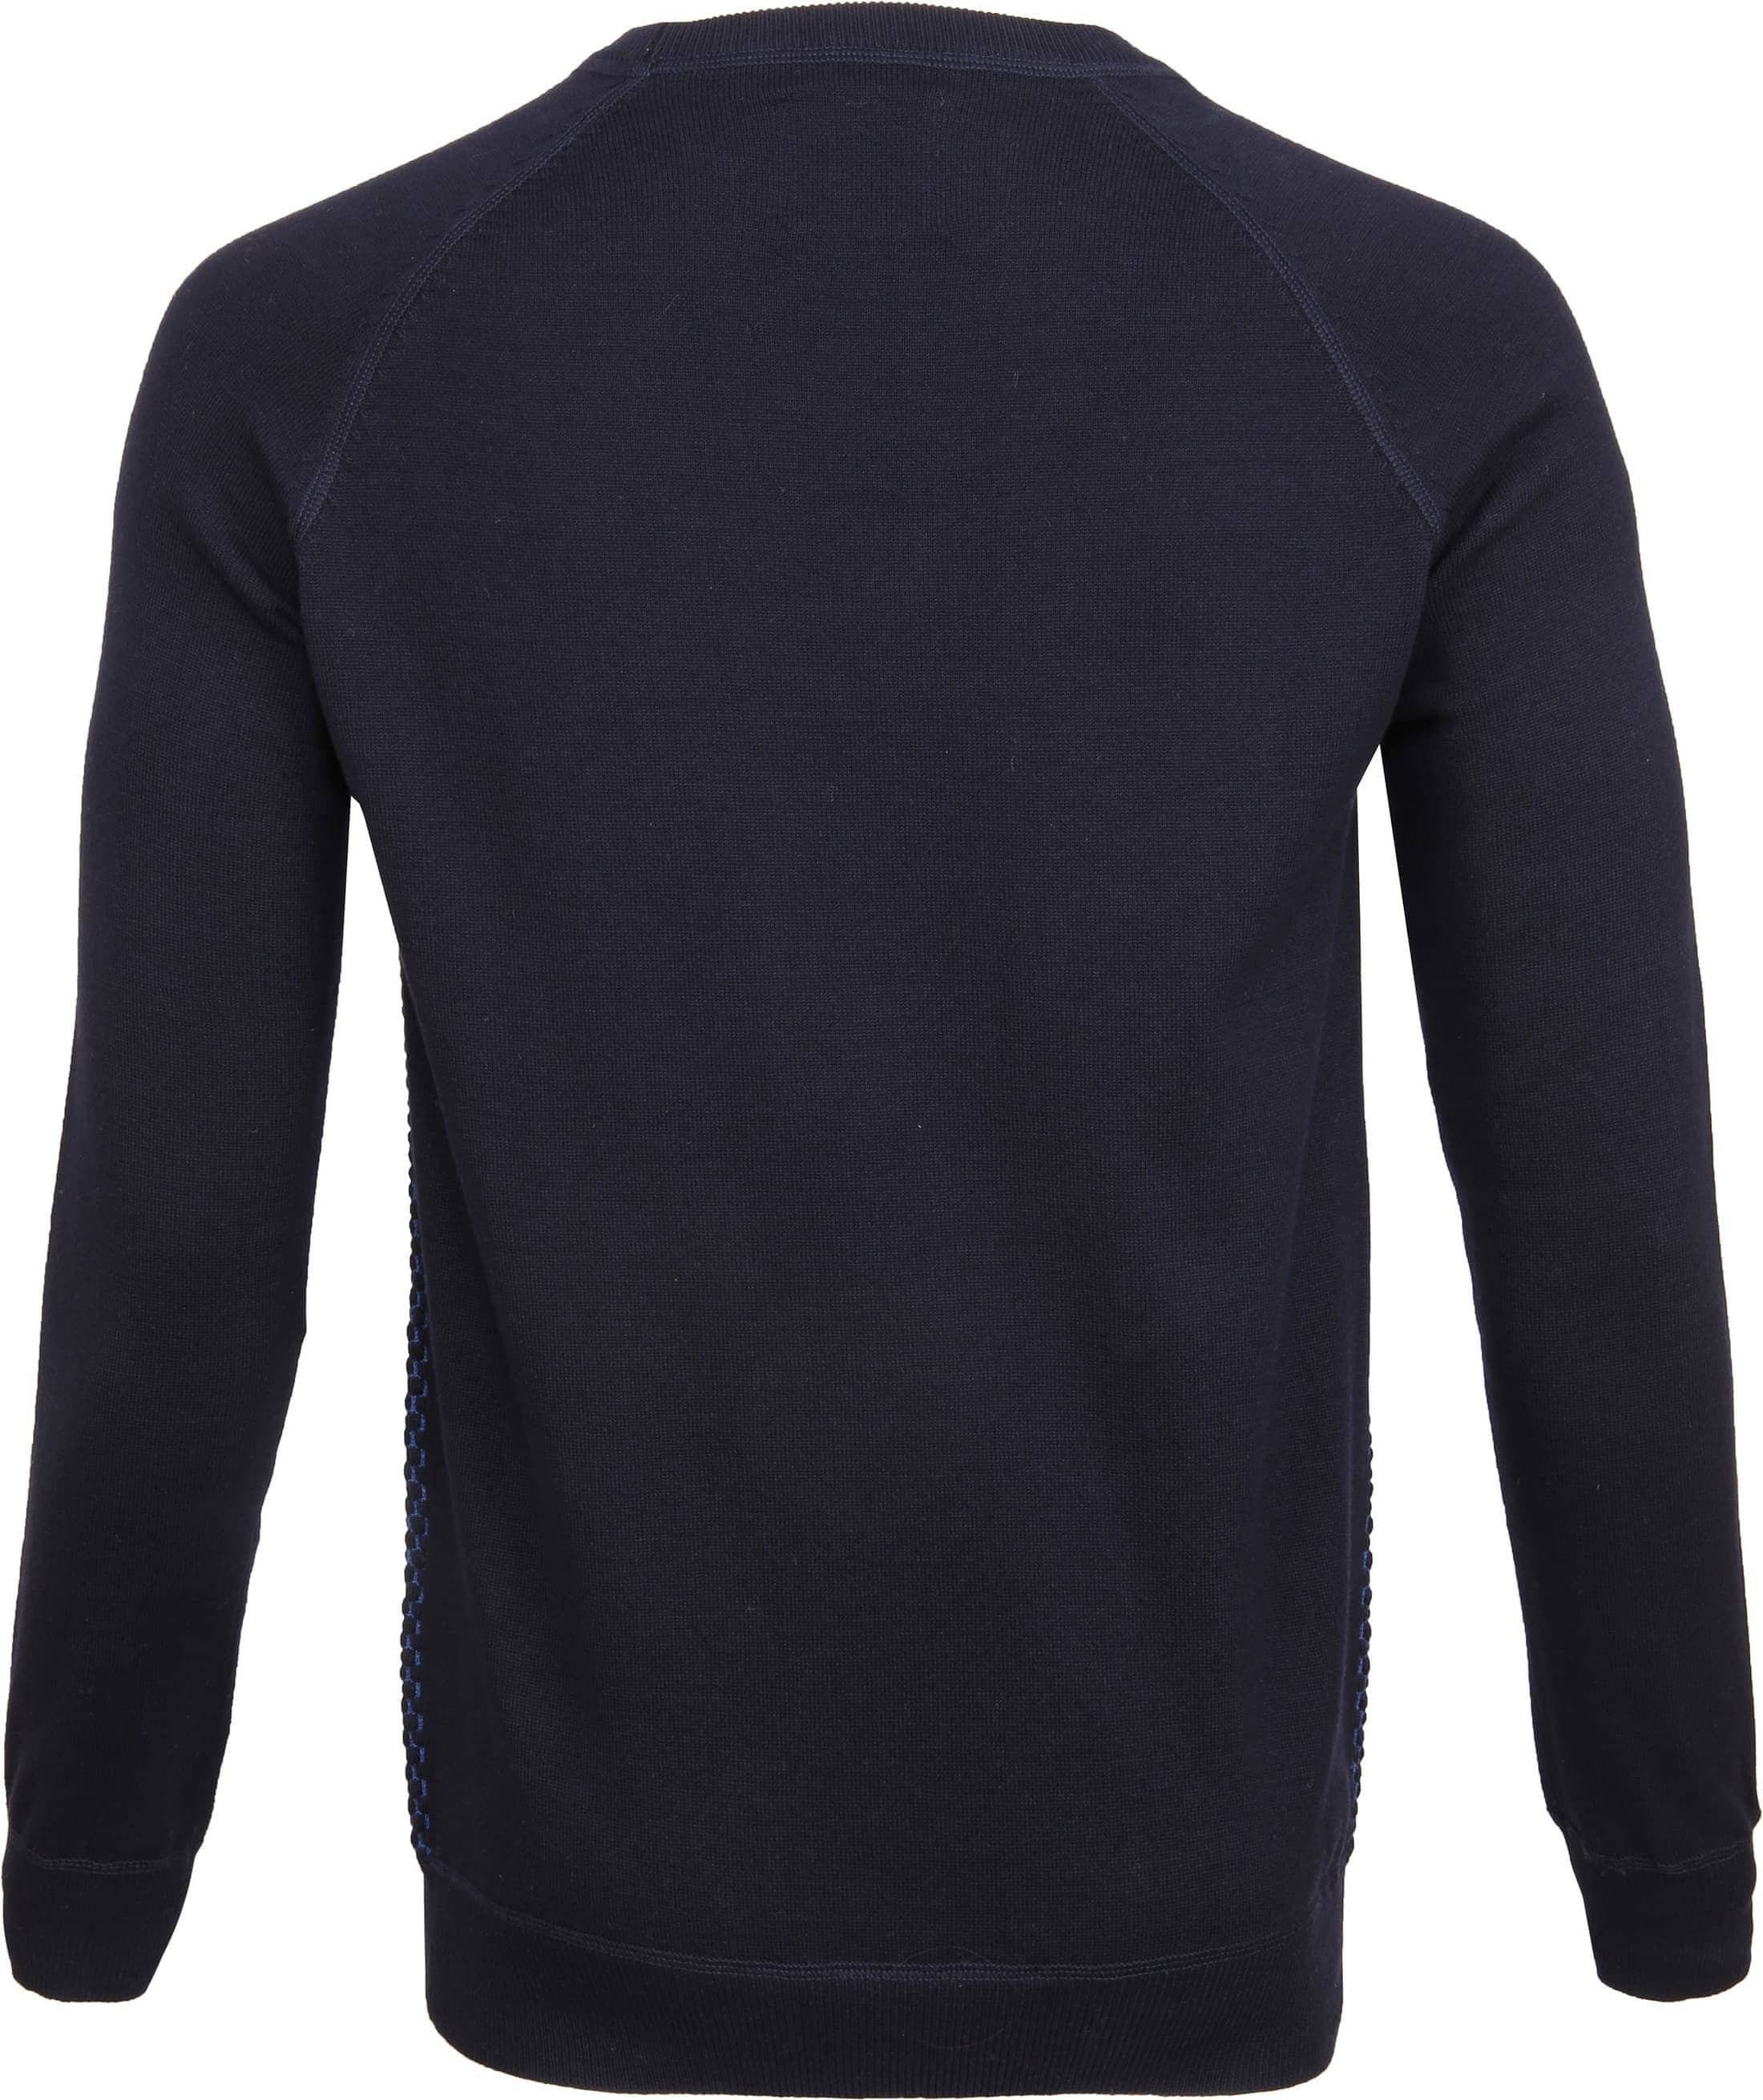 Suitable Pullover Harry Navy Blue foto 3